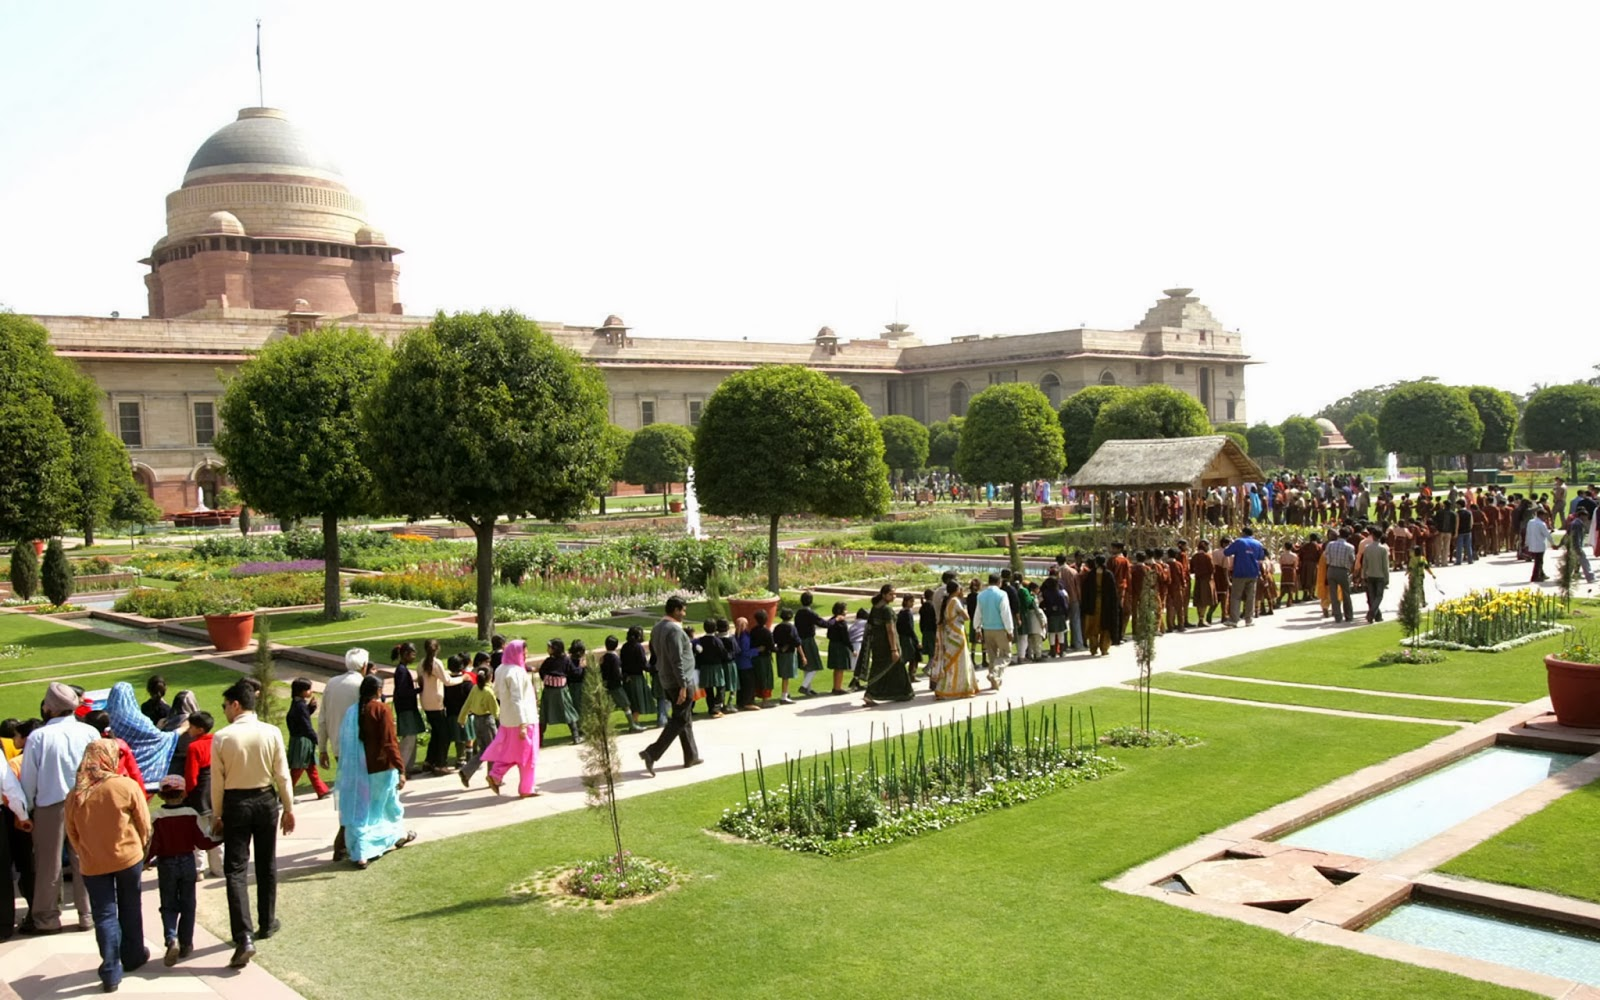 mughal garden The mughal gardens located within the rashtrapati bhavan, is one of the most famous parks and gardens in delhi designed by sir edwin lutynes, the mughal gardens is designed in a blend of mughal style and the design of a british garden.